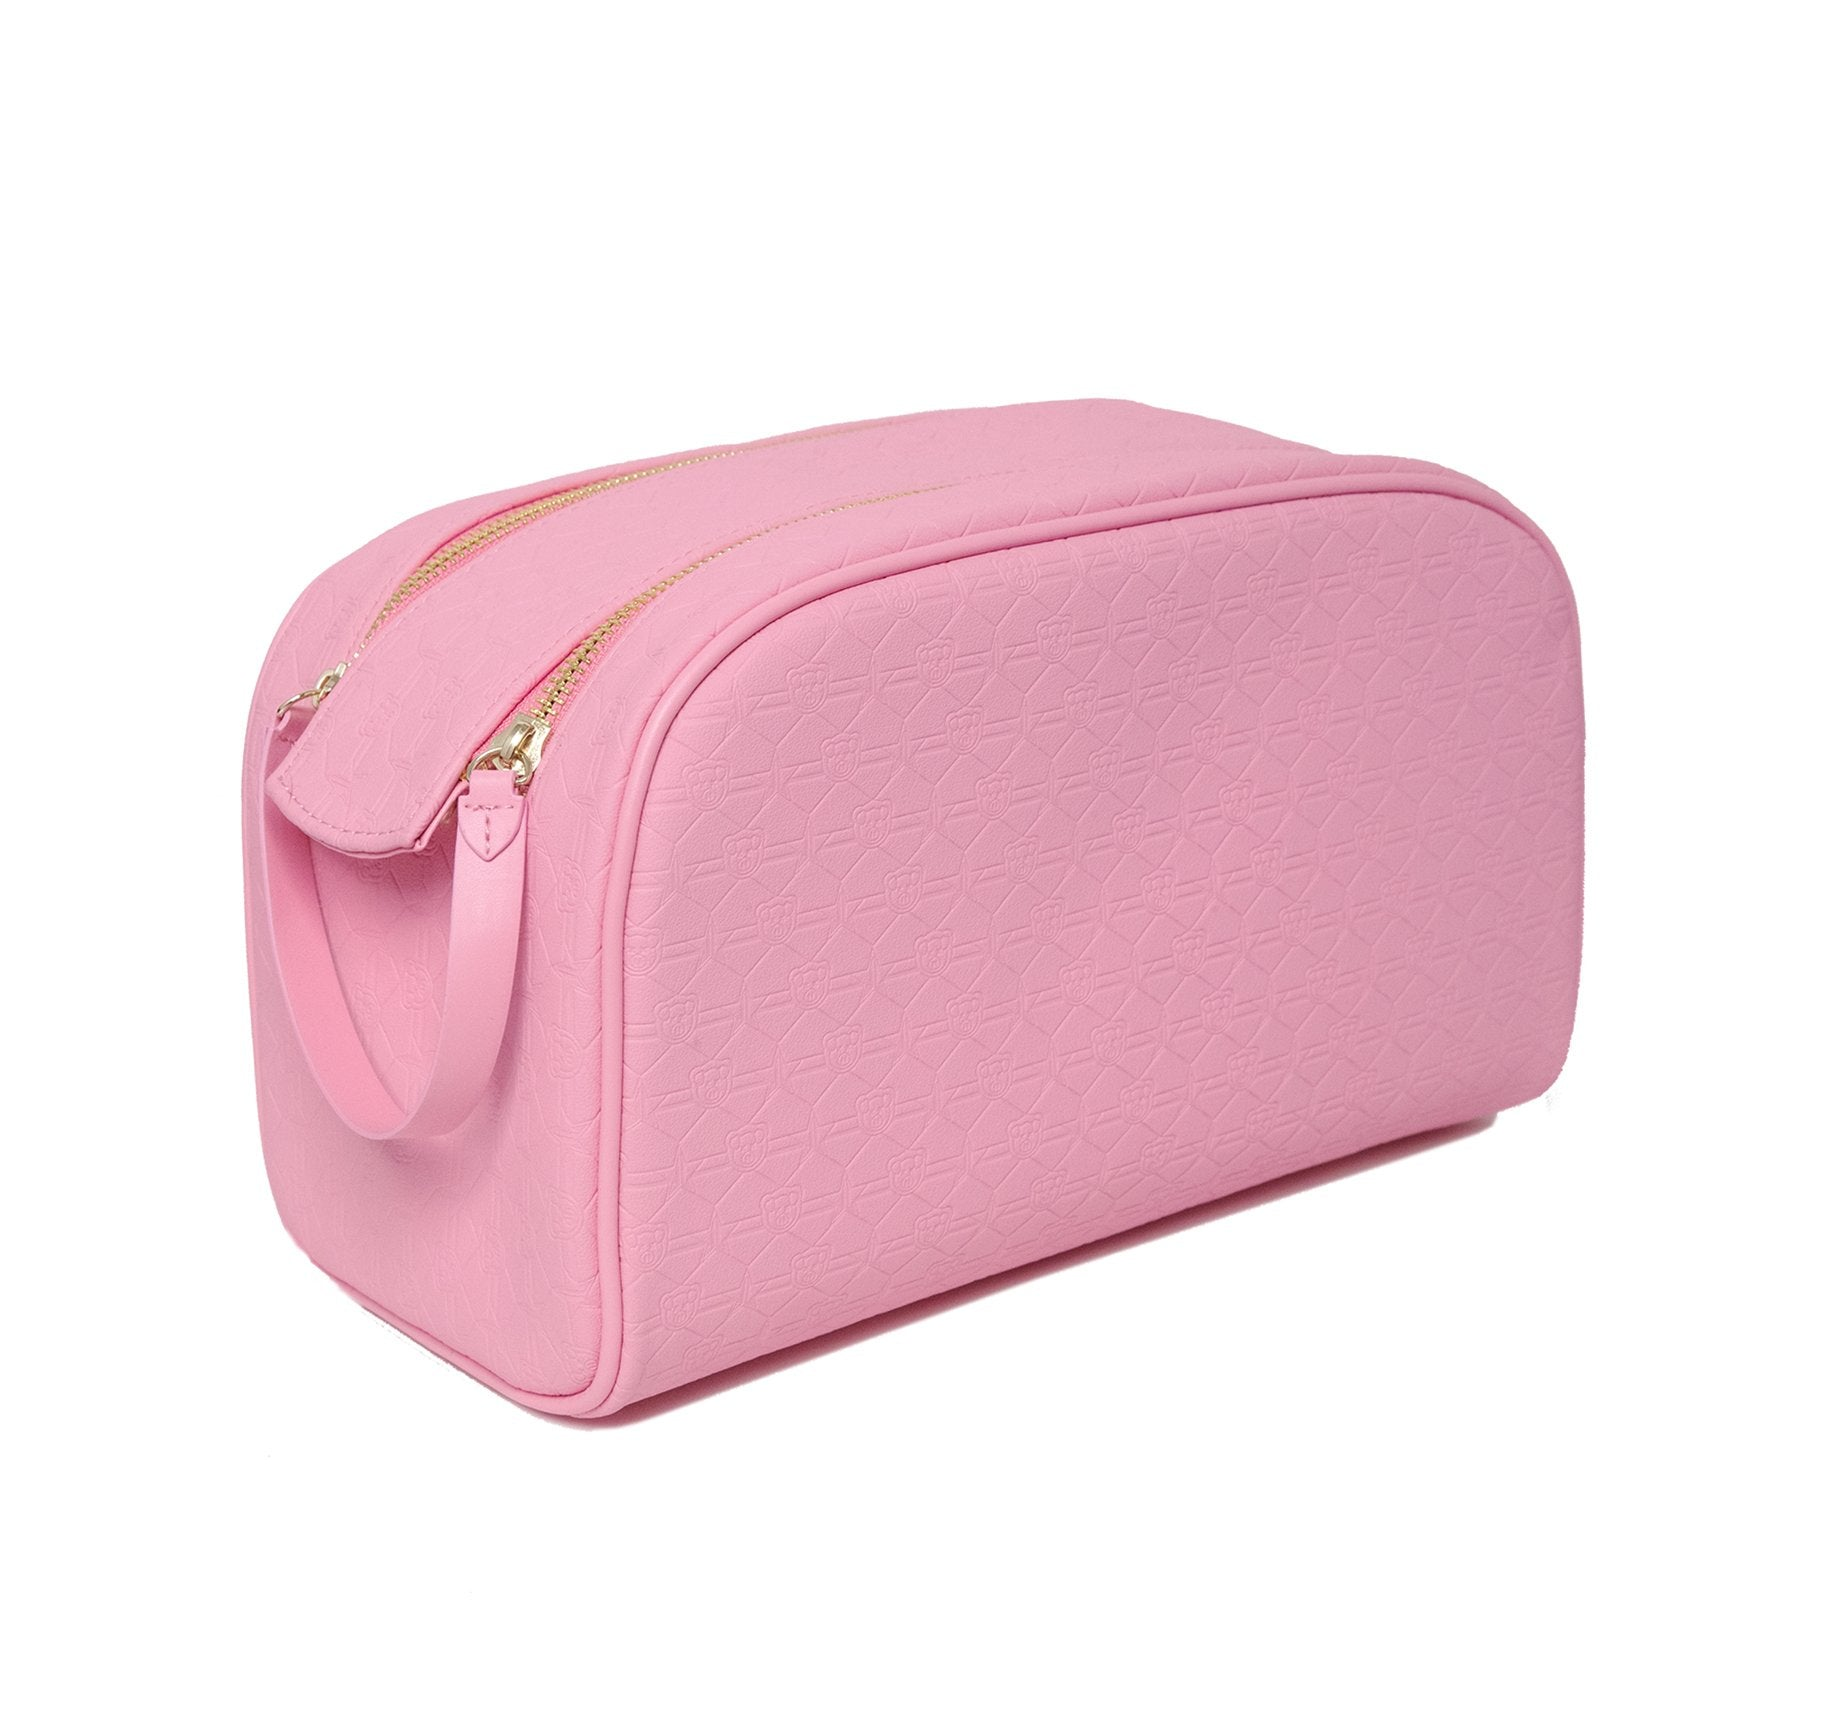 DOUBLE ZIP BAG PINK - SD X JSC, view larger image